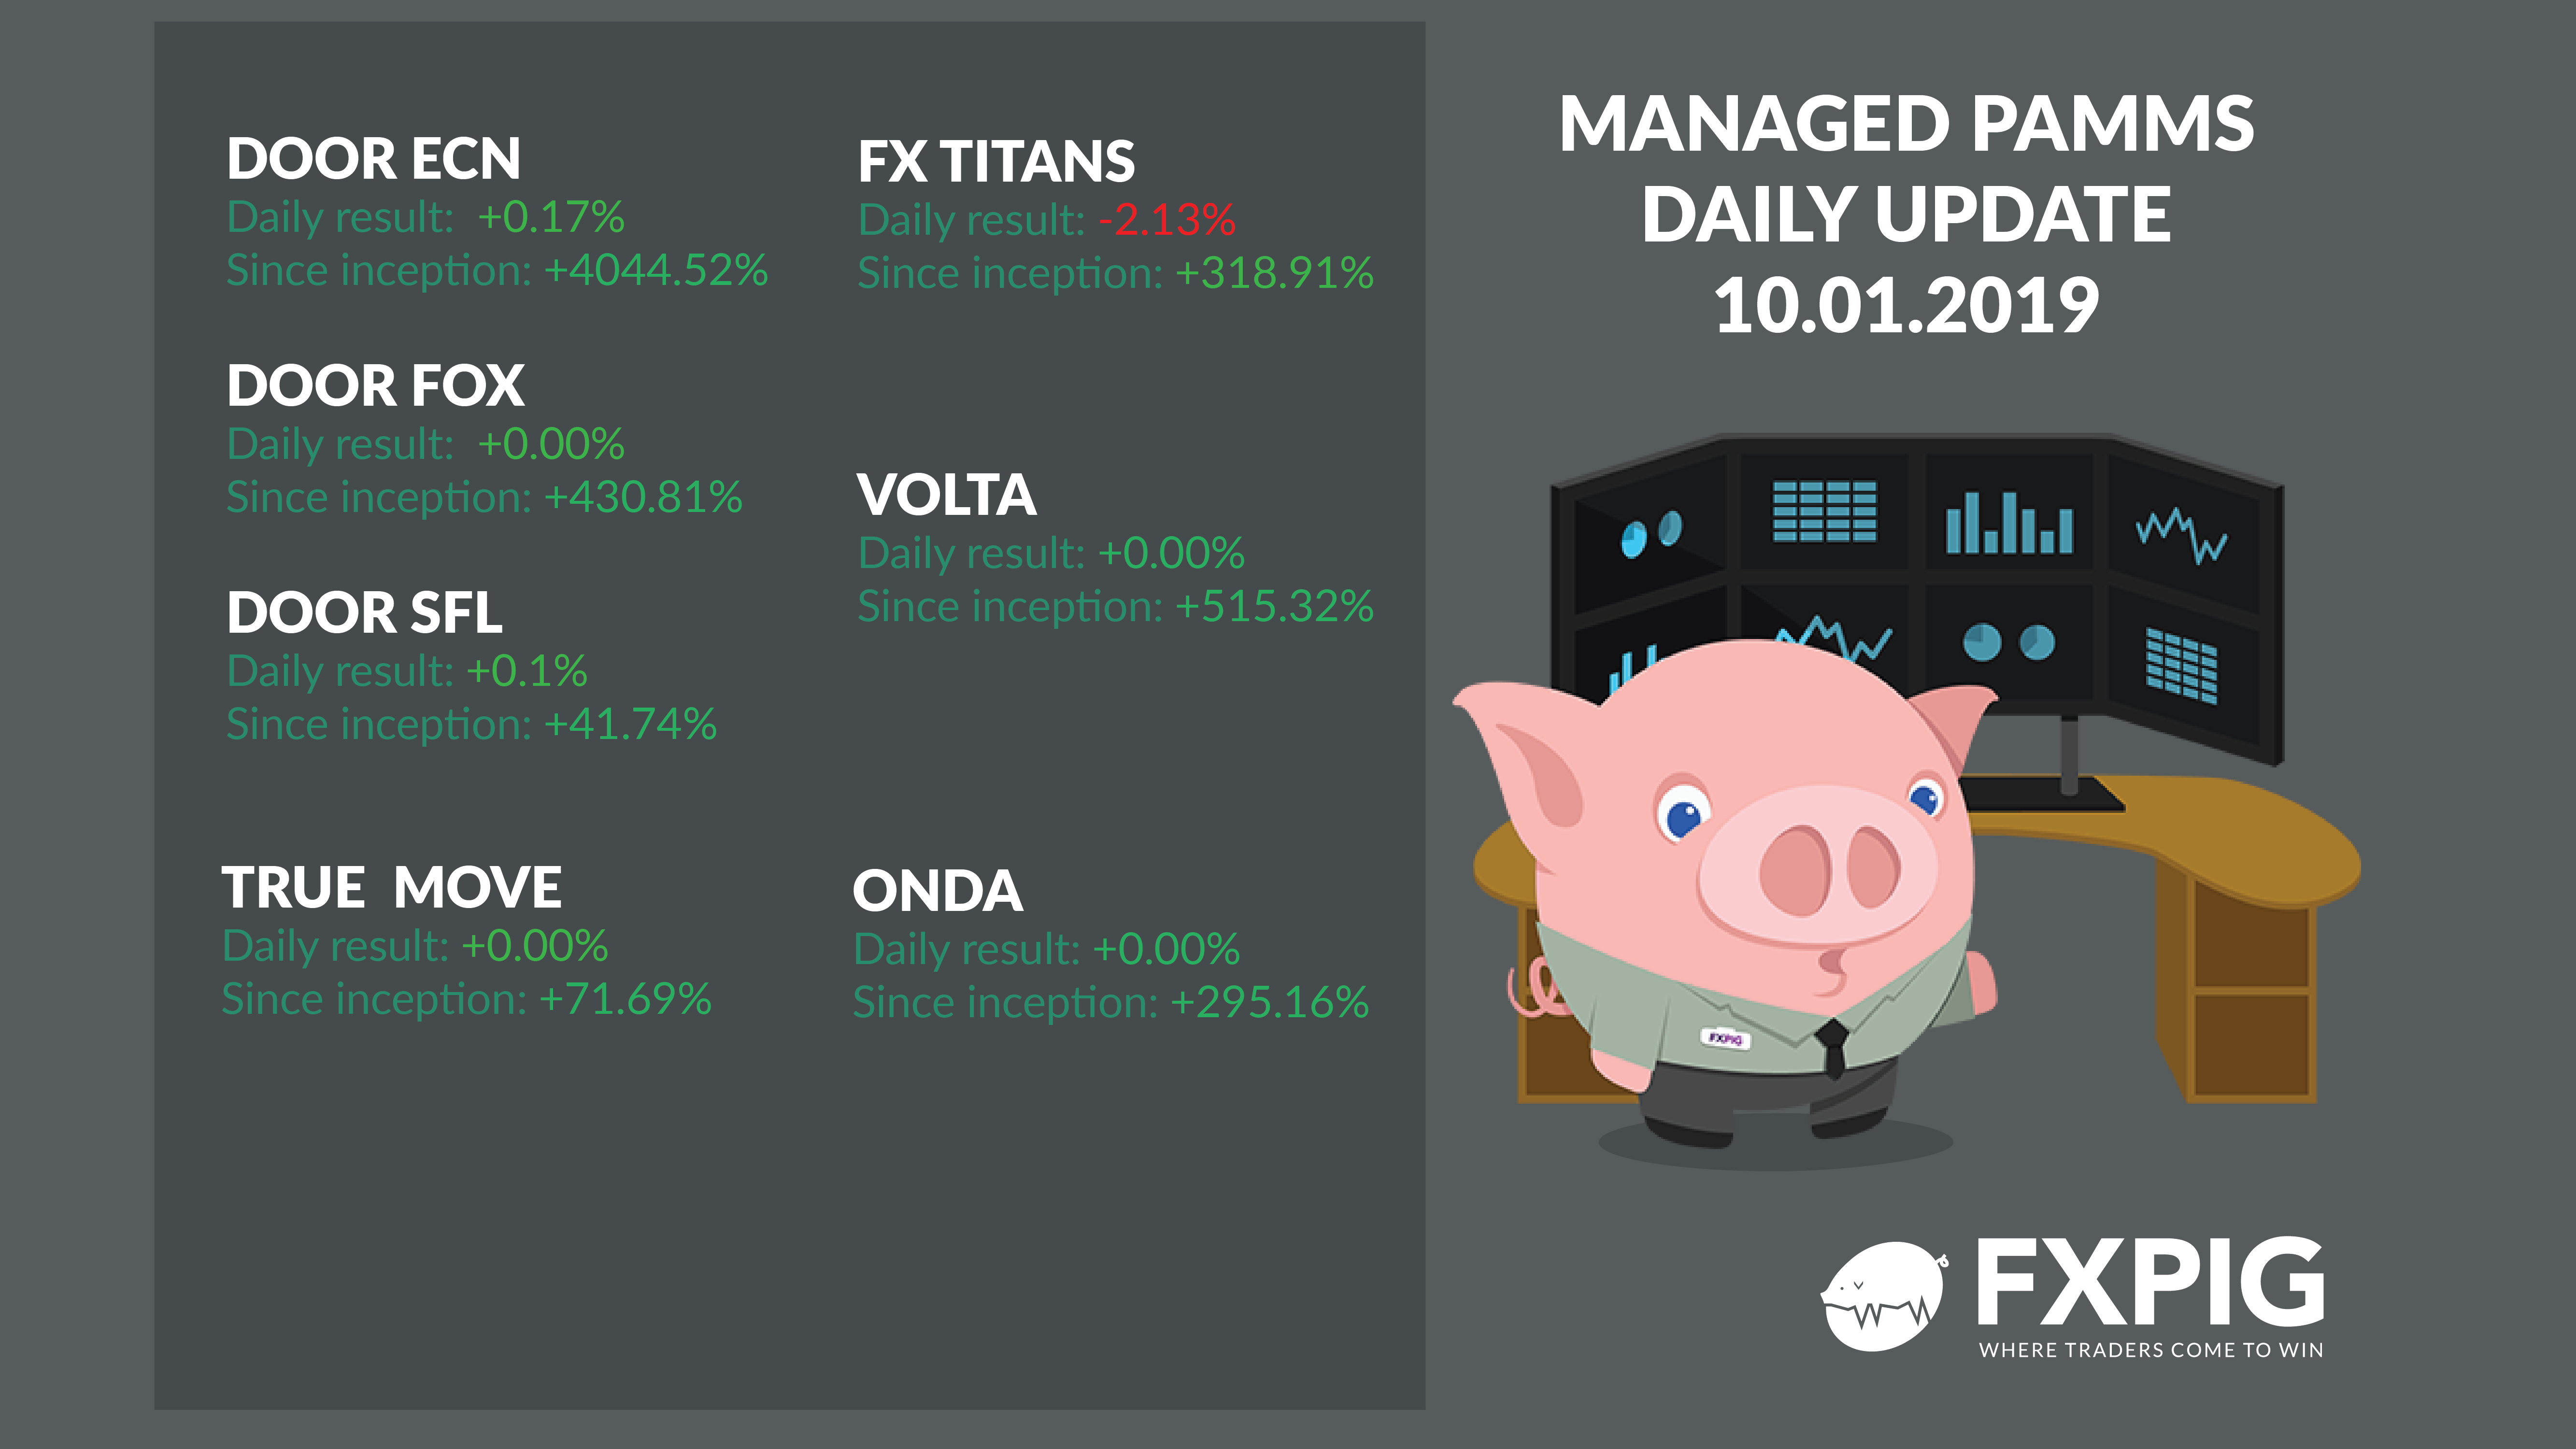 Forex_Trading_Fx_Trader_FXPIG_PAMMS_MANAGED_ACCOUNTS_PROFIT_10.01.2019